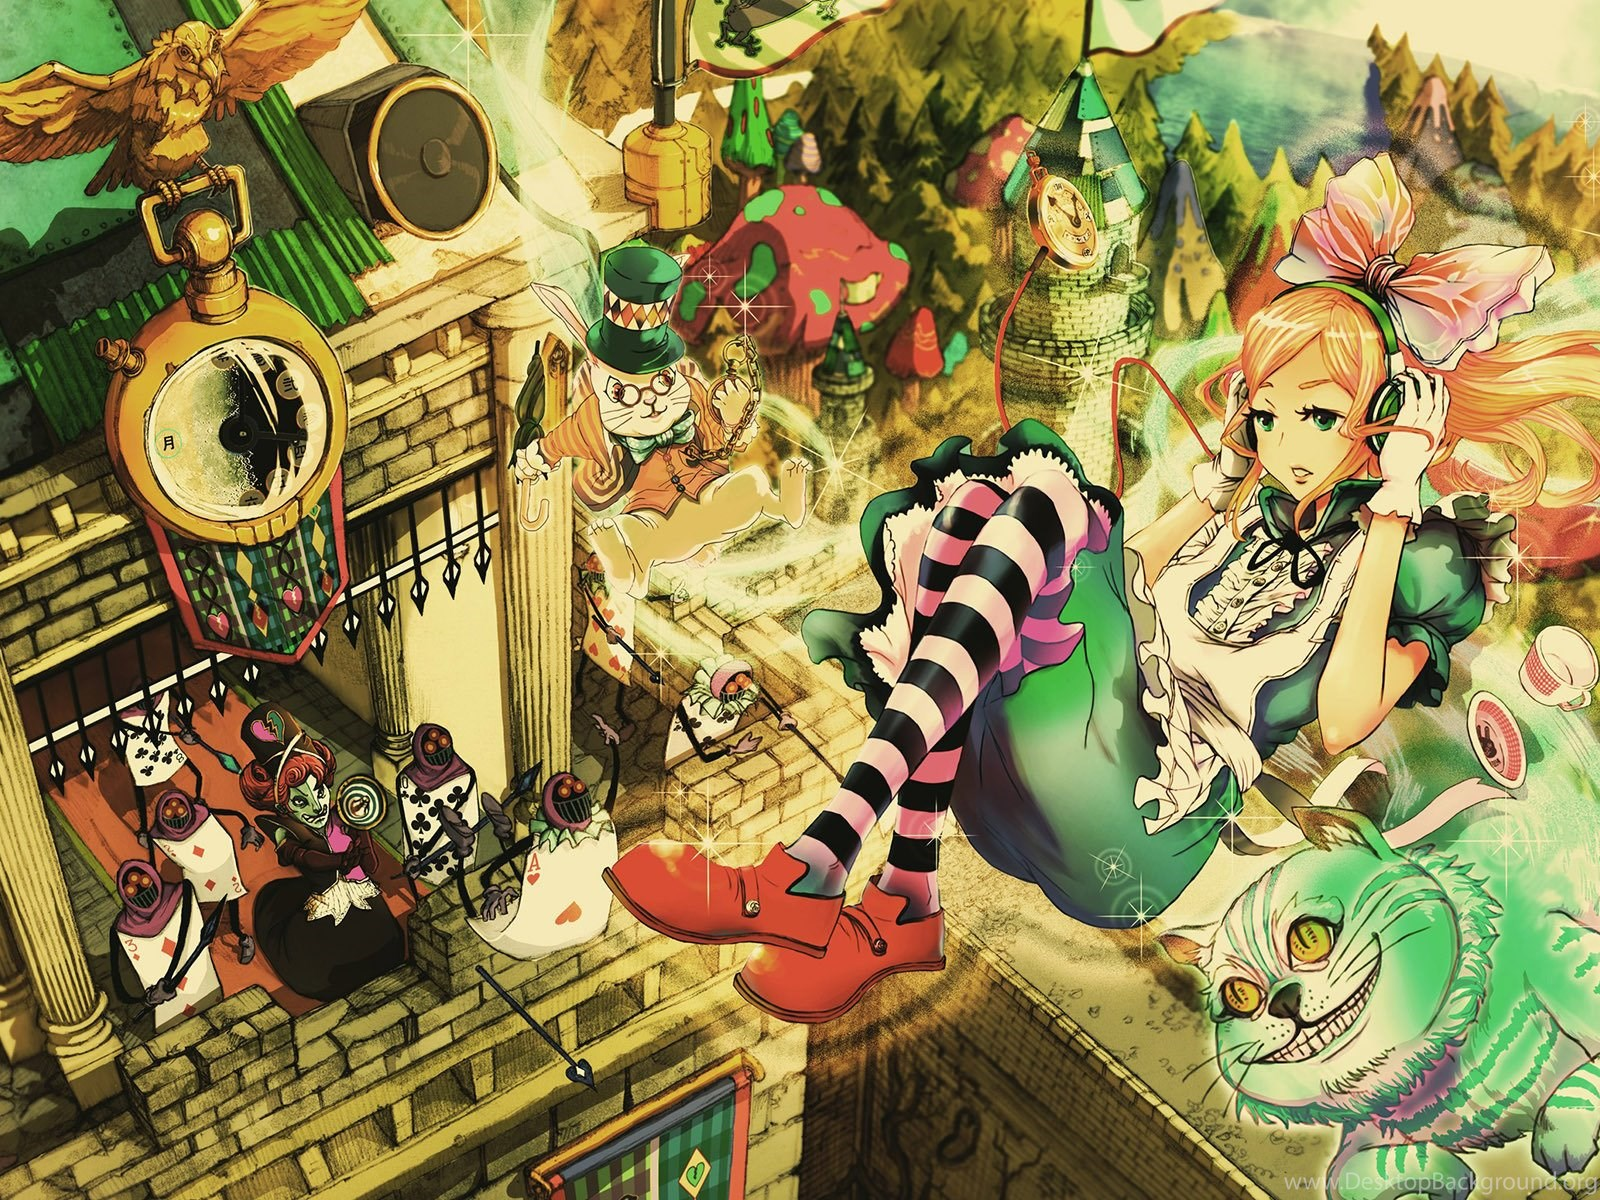 Alice in wonderland wallpapers for iphone desktop background - Alice in wonderland iphone wallpaper ...